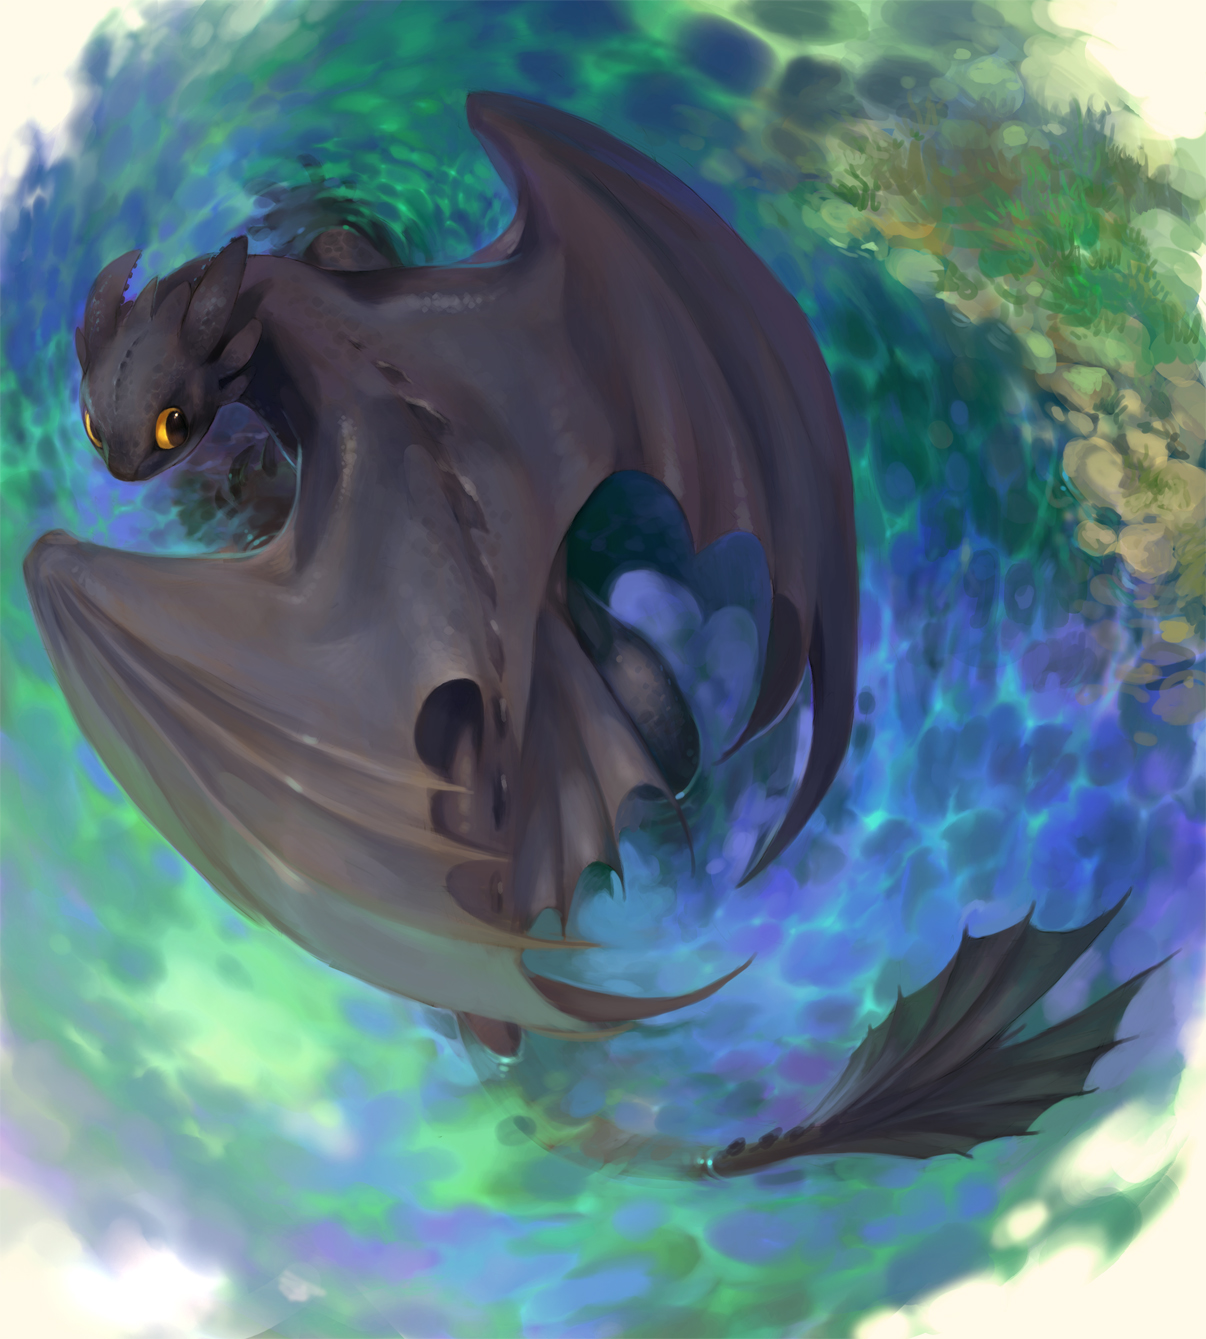 HTTYD Fanart Gallery #5 – Theme: For the Love of Toothless